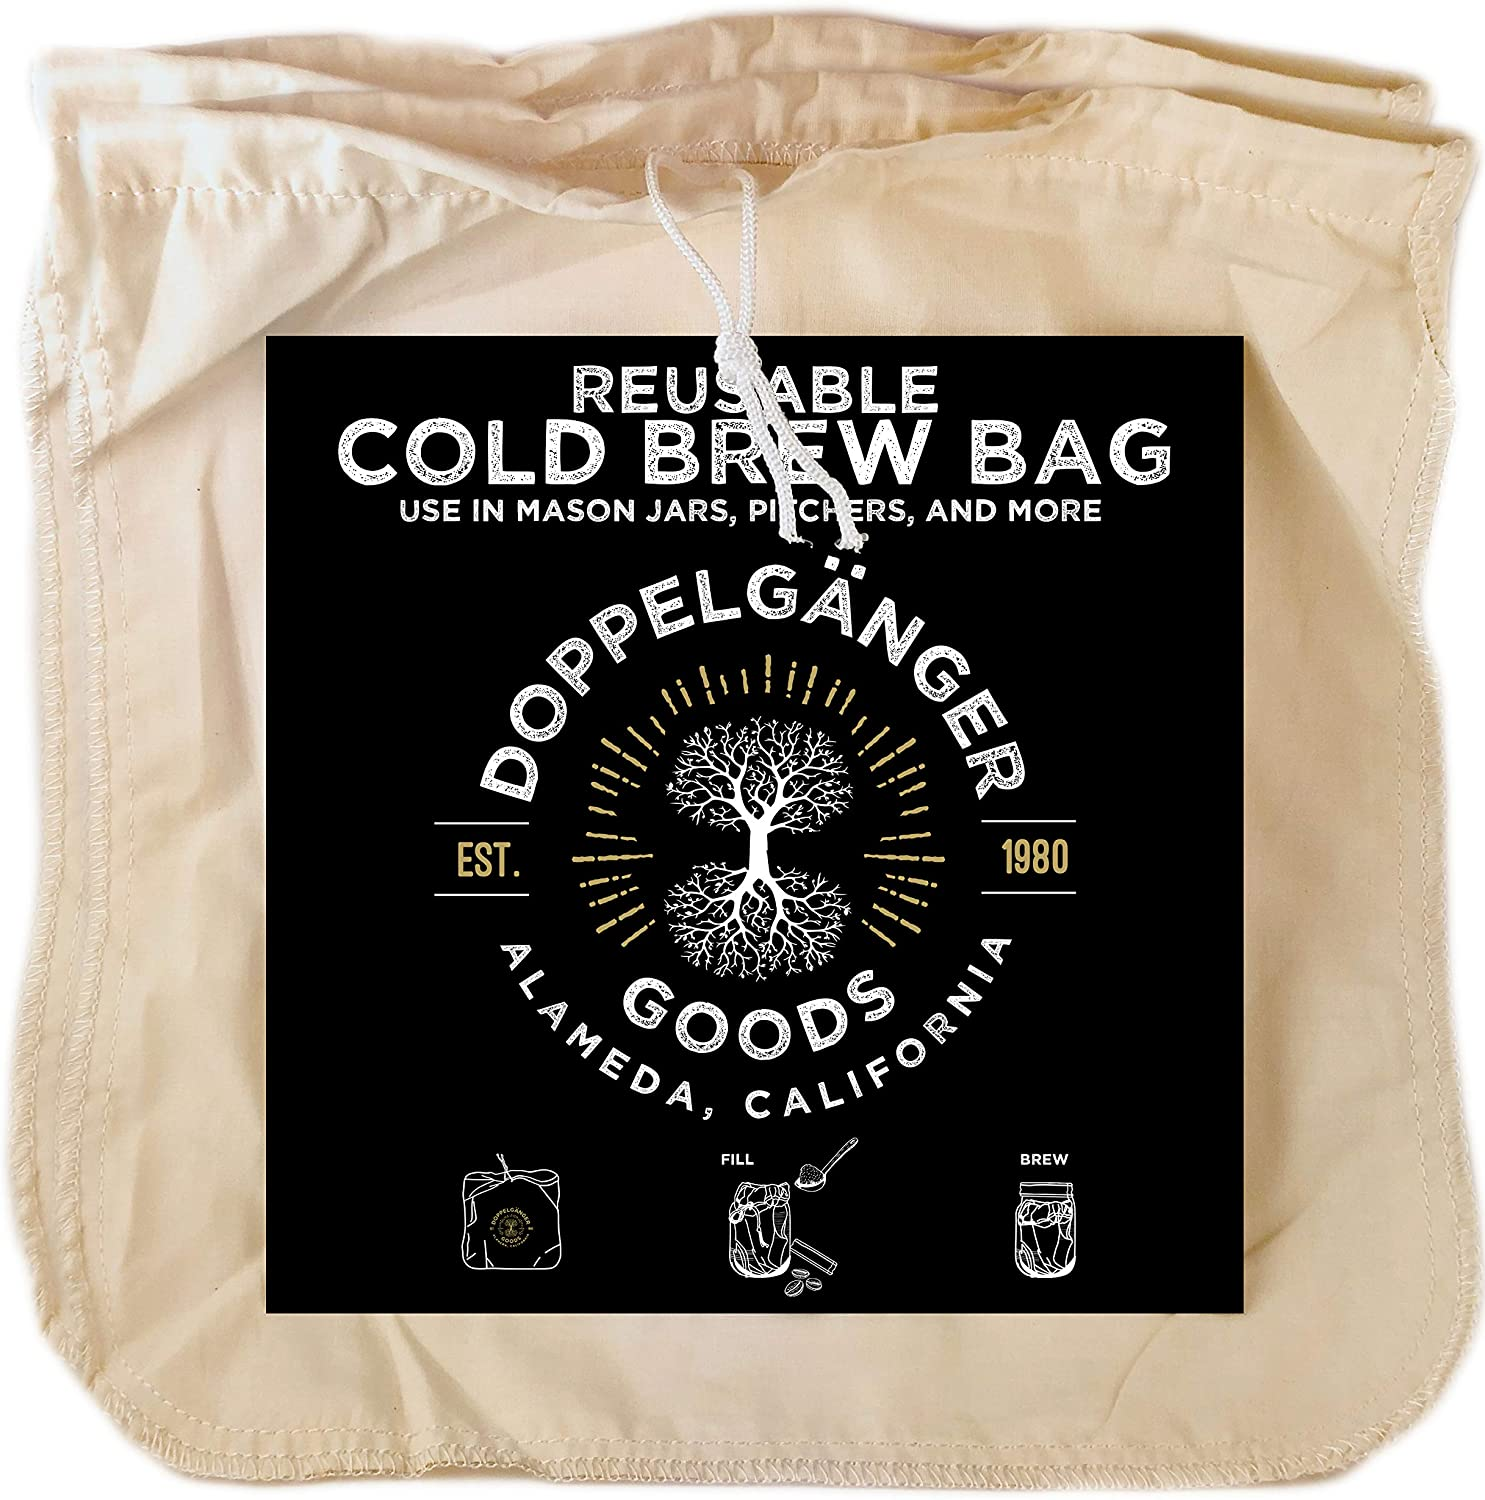 (2-Pack, Large 12in x 12in) Organic Cotton Cold Brew Coffee Bag - Designed in California - Reusable Coffee Filter with EasyOpen Drawstring Cold Brew Maker for Pitchers, Mason Jars, Toddy Systems